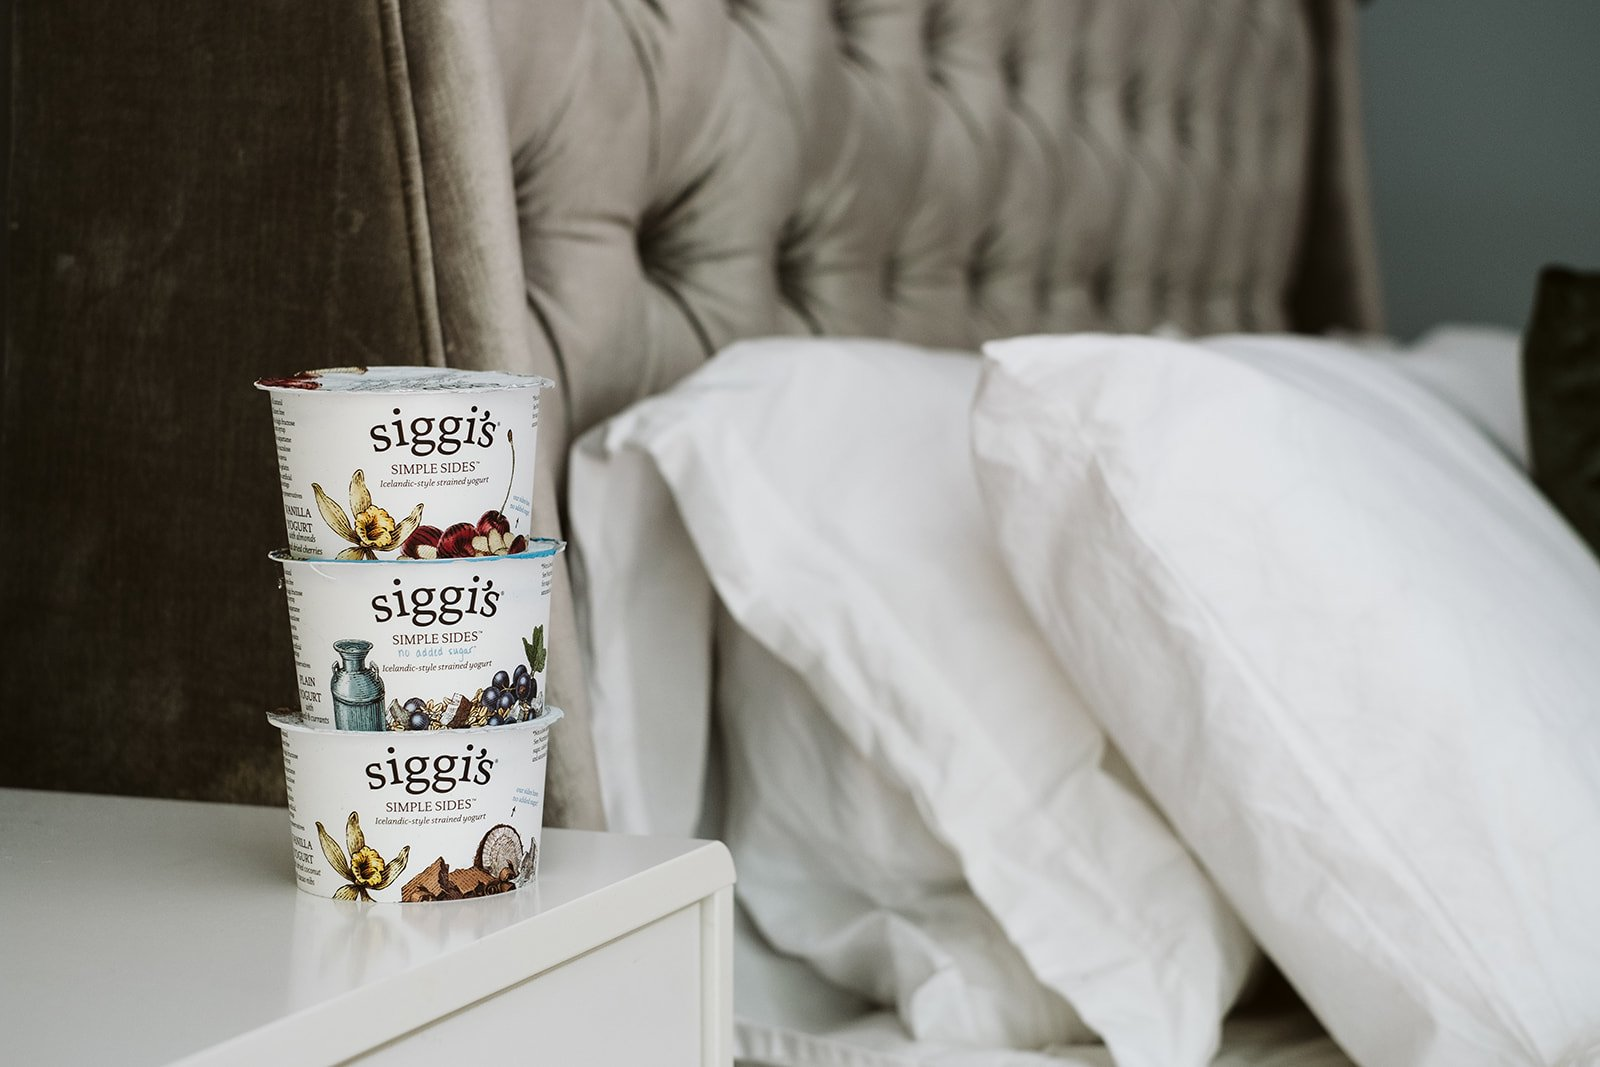 7 easy ways to practice self care each day of the week! From pampering yourself with calming music and homemade face mask to treating yourself to healthy snacks and nourishing meals, this week-long self care challenge can be done anytime, anywhere. This post is in partnership with siggi's.